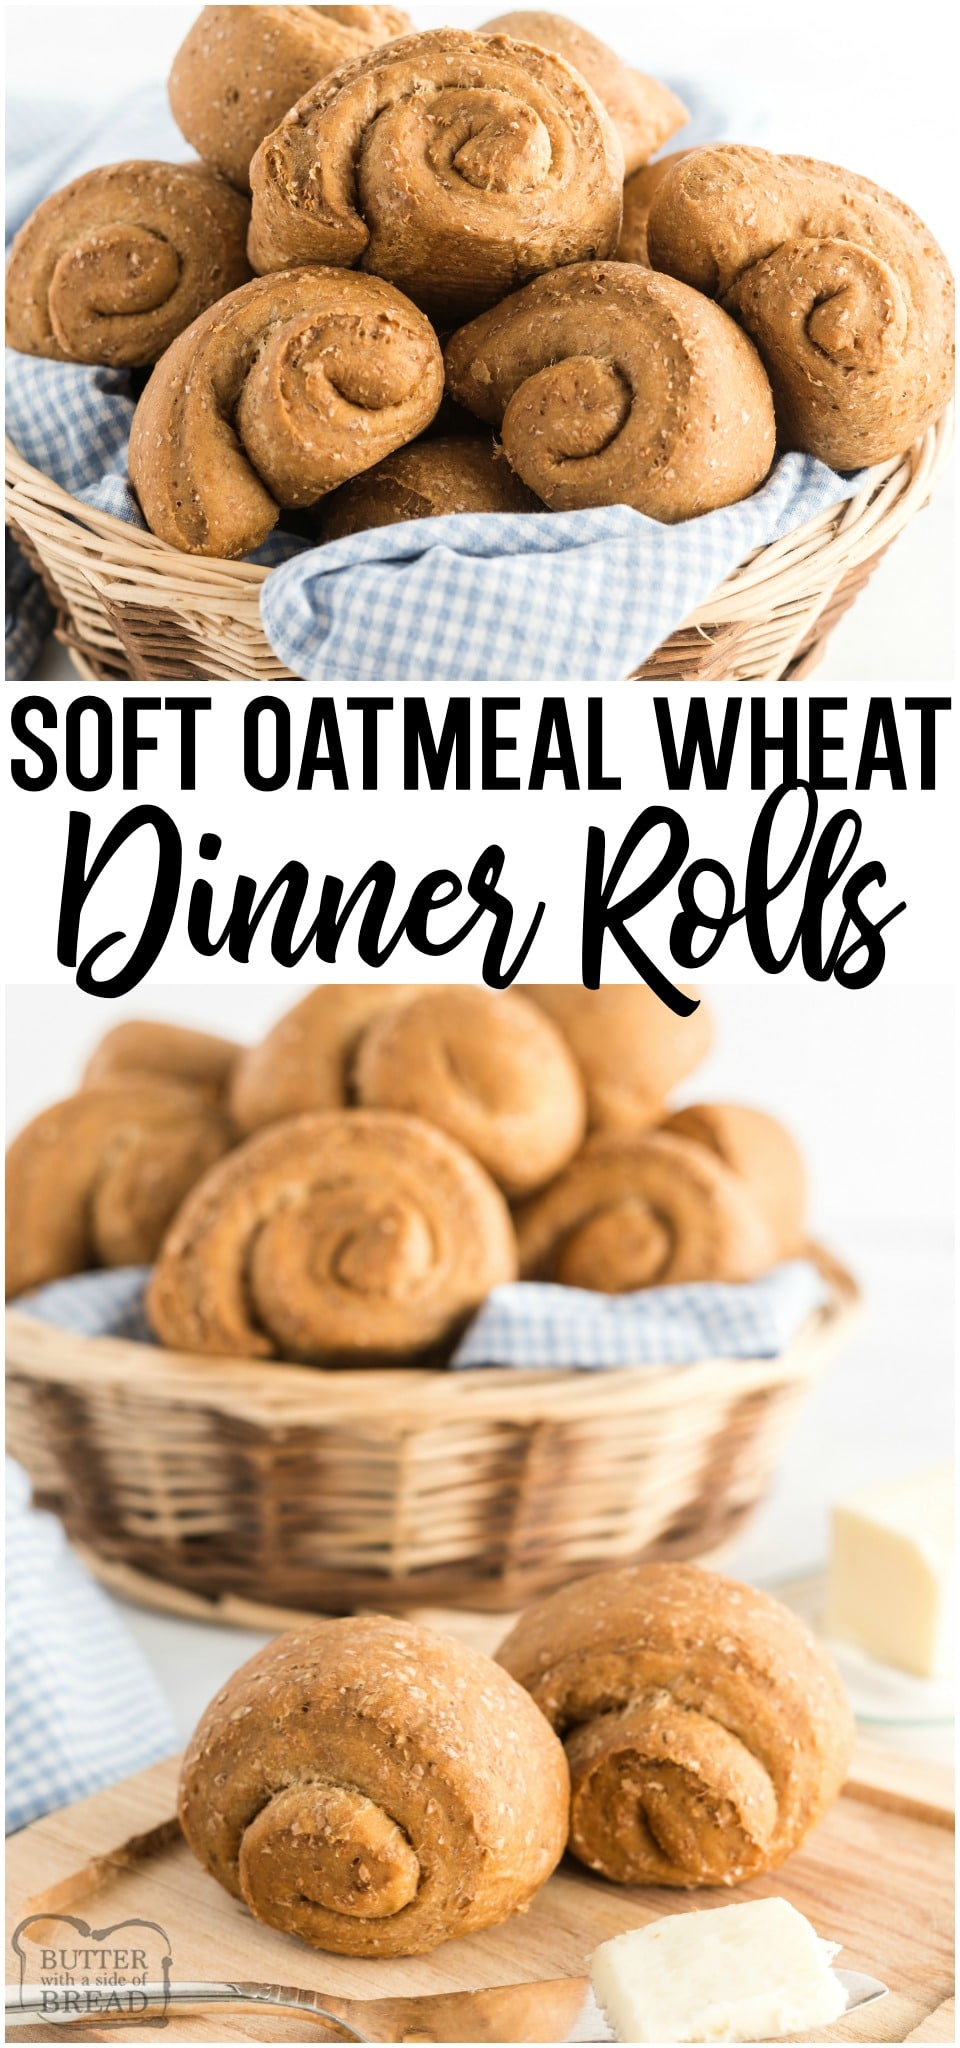 Soft Wheat Dinner Rolls made with whole wheat flour, yeast, oats and molasses for a homemade roll with fantastic taste and texture! Family favorite wheat dinner roll recipe!